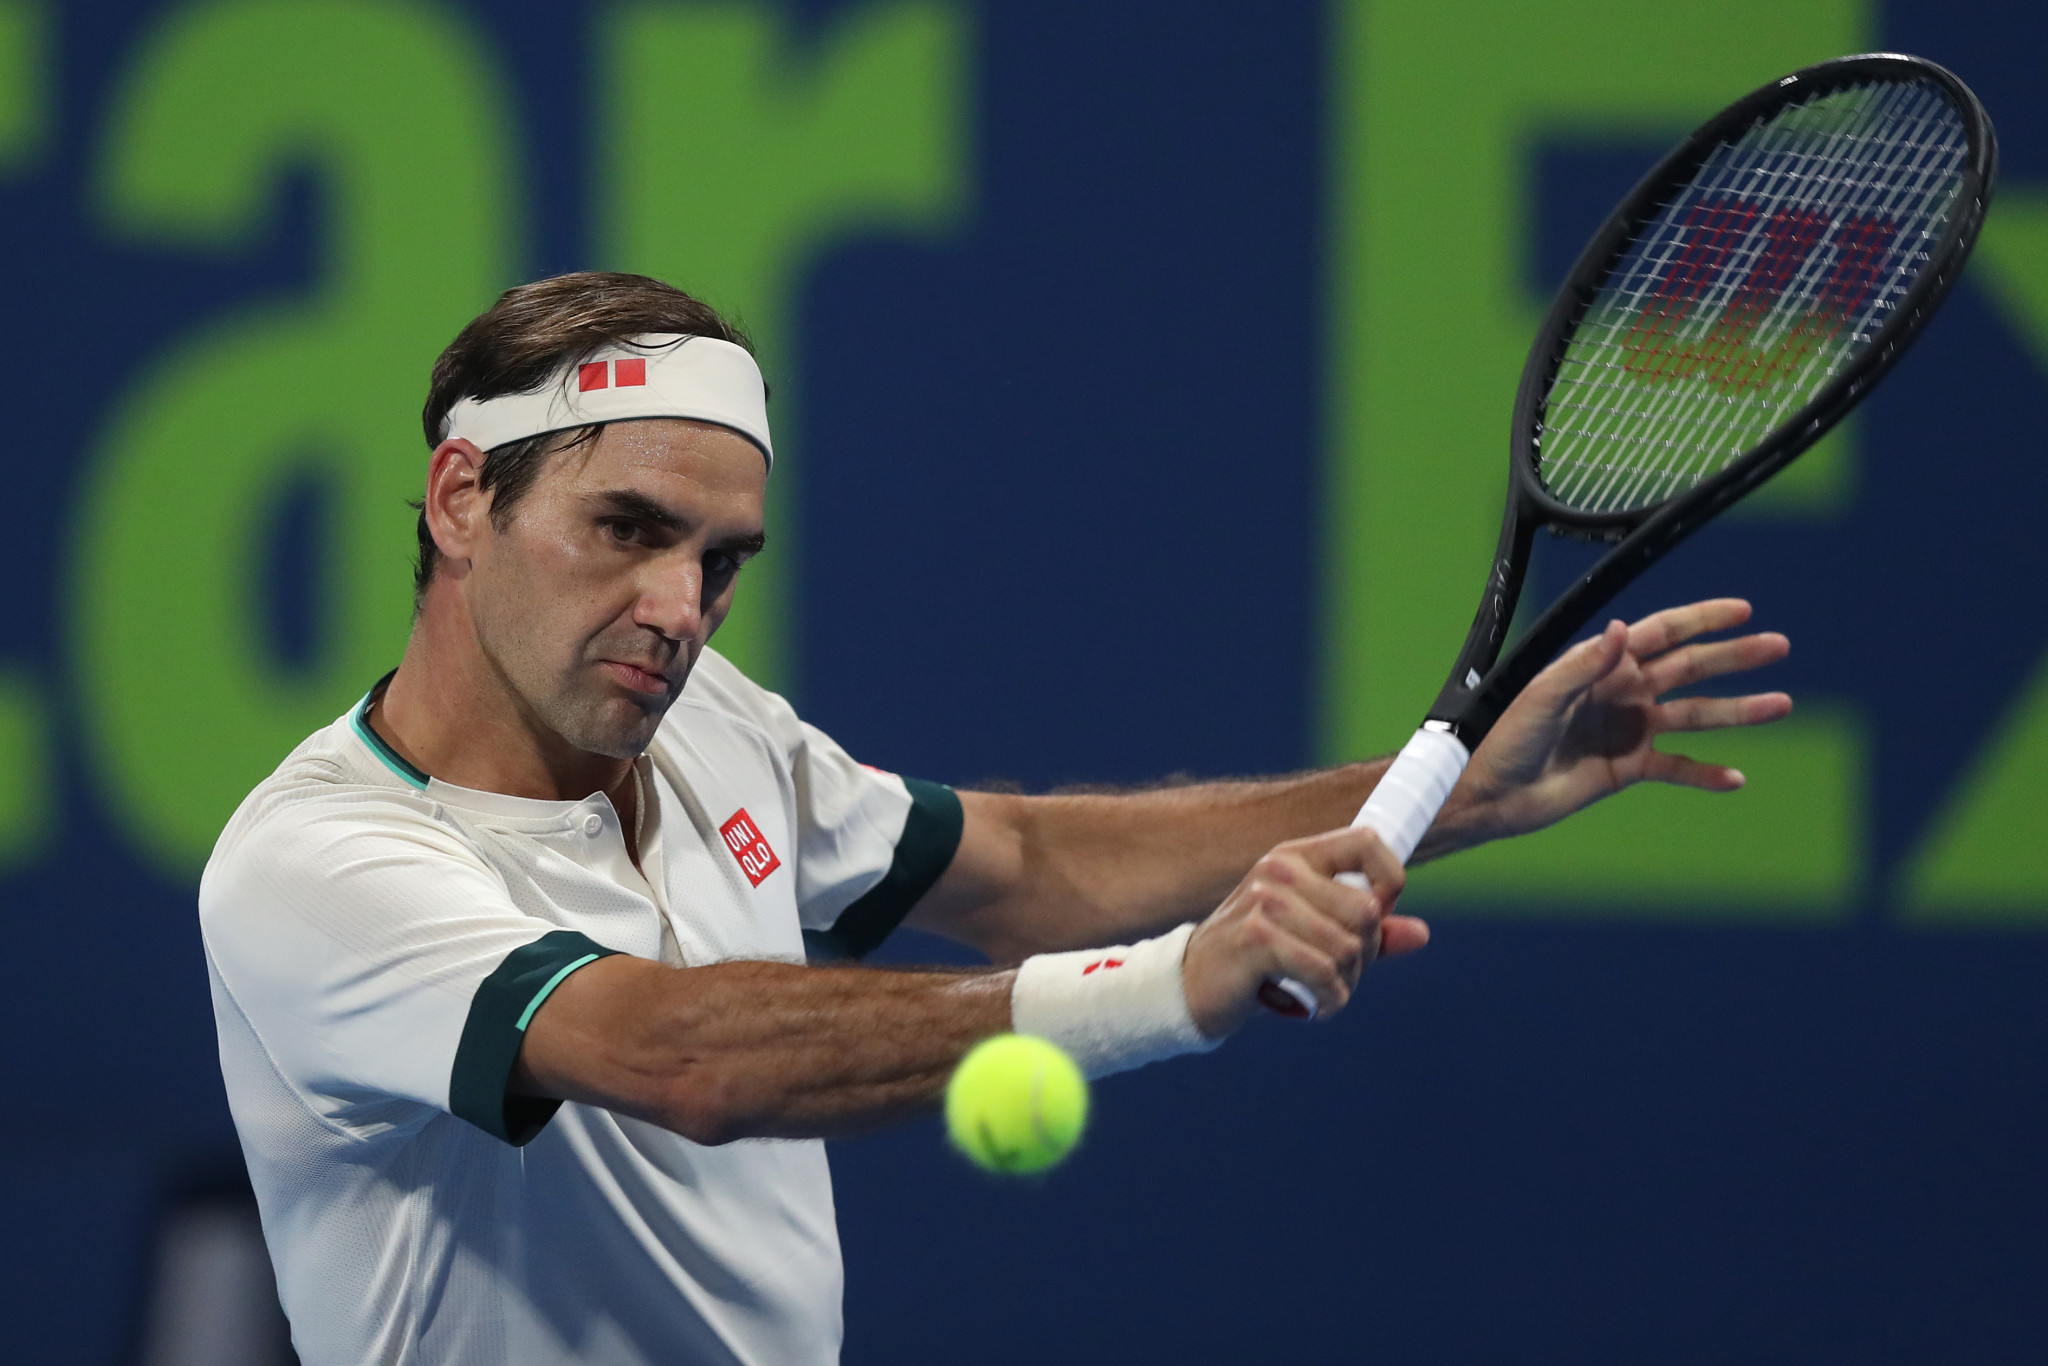 Federer insists athletes need Tokyo 2020 assurances to end uncertainty